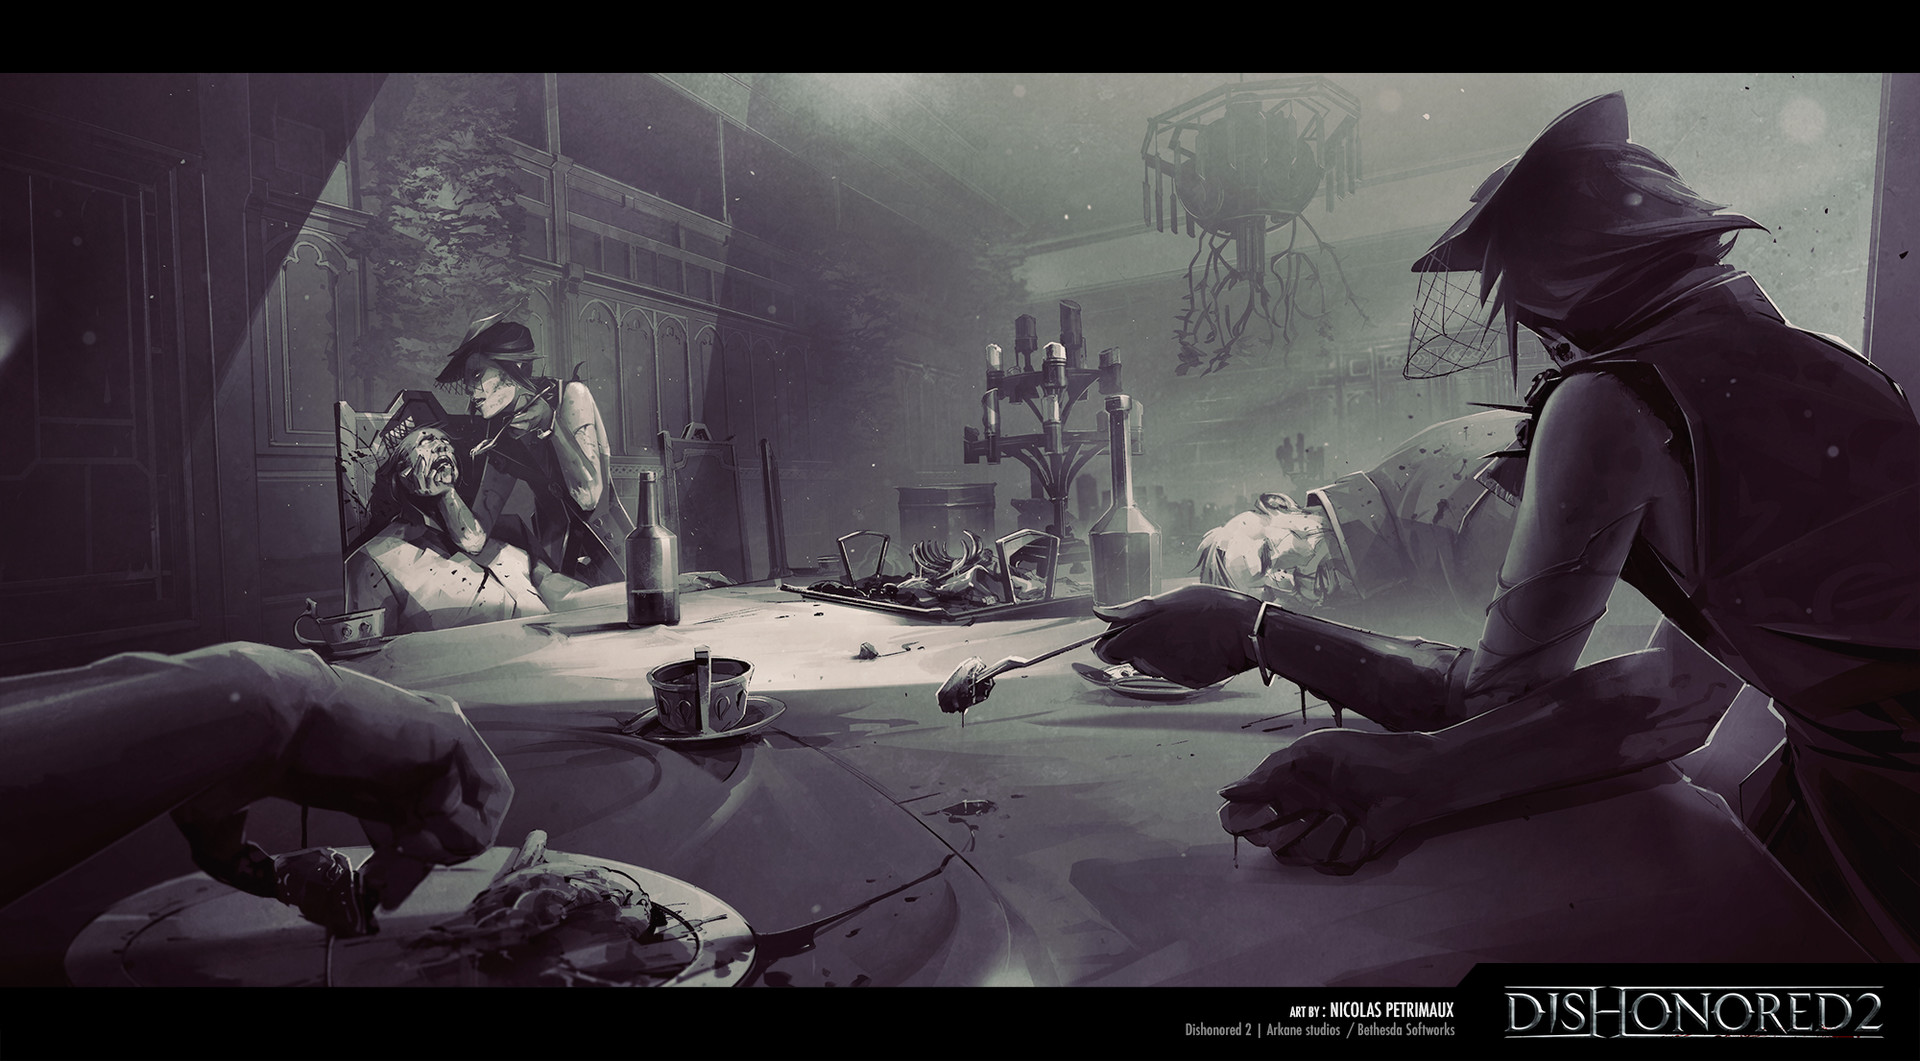 Nicolas petrimaux templatecredit dishonored2 witches